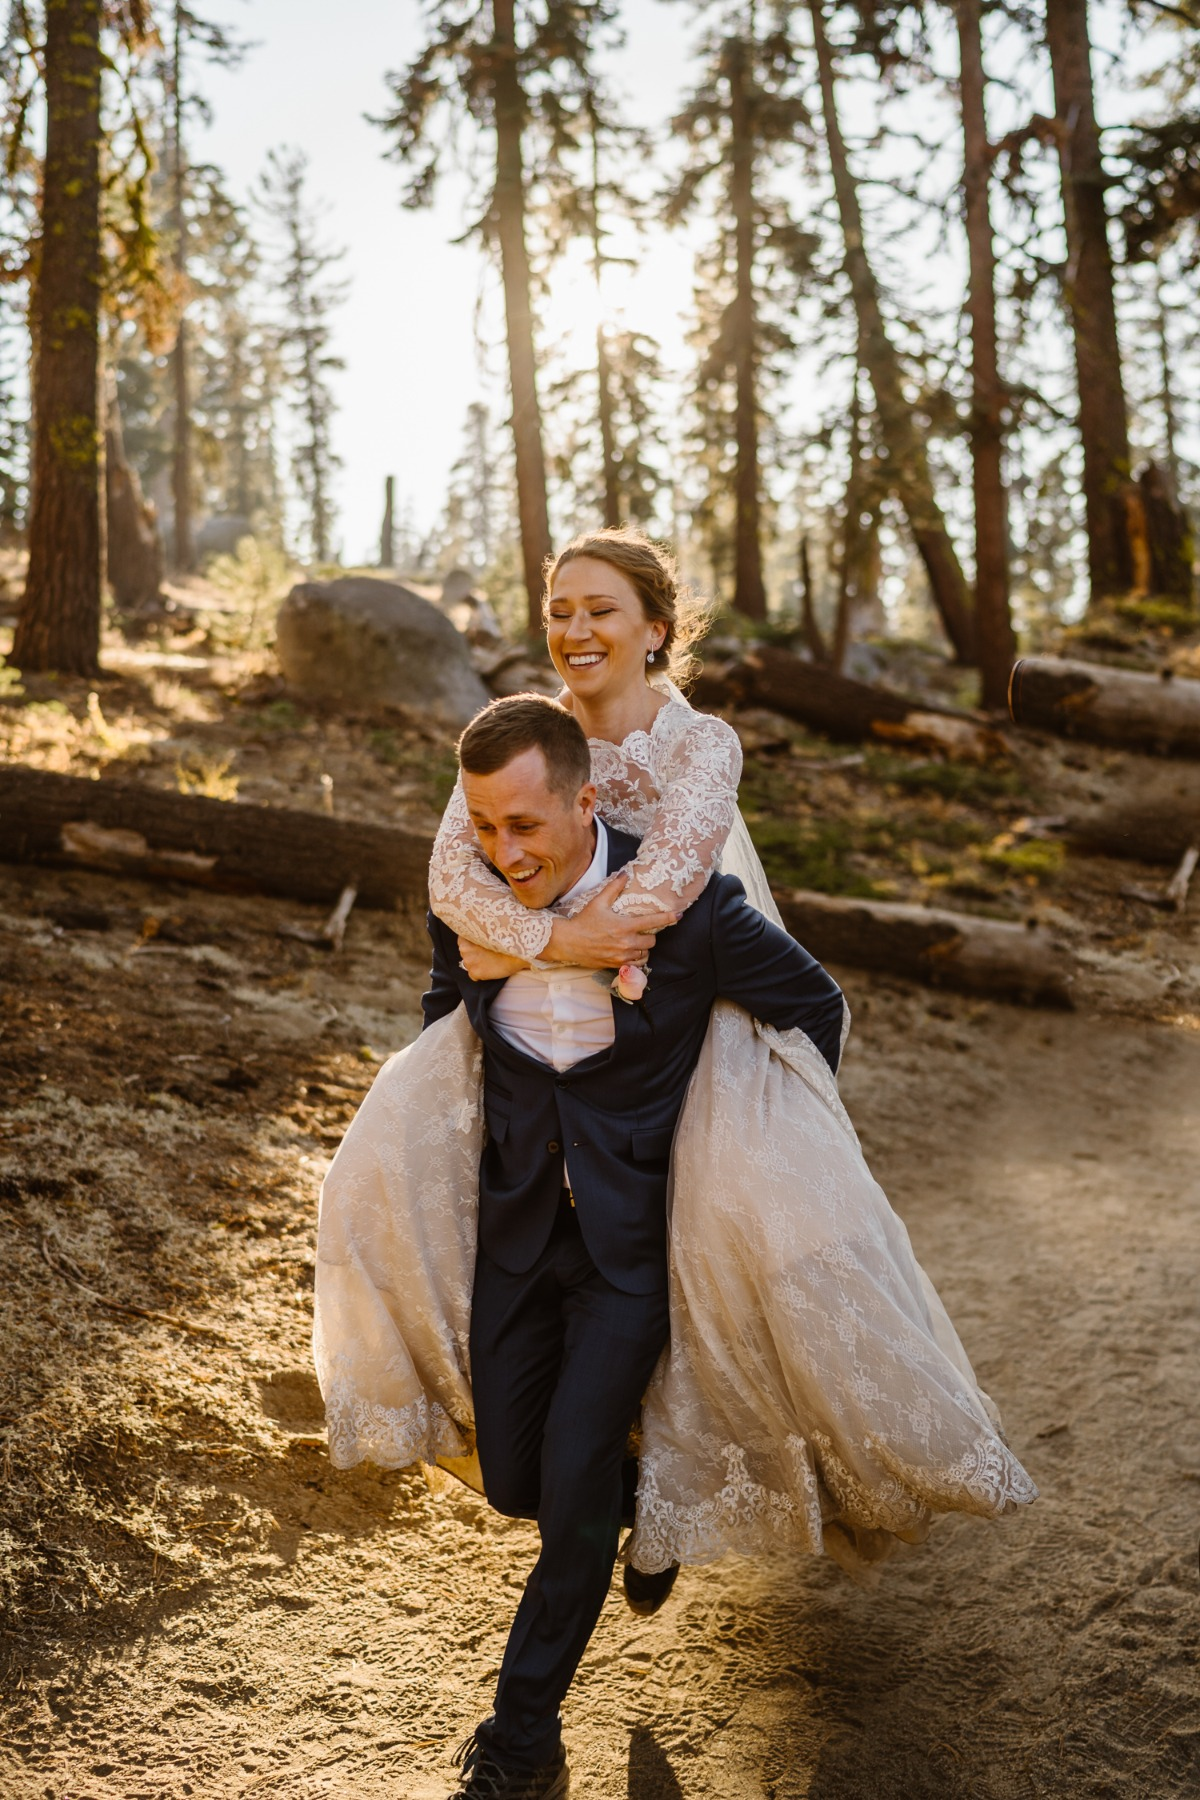 How To Have A Breathtaking Elopement In Yosemite